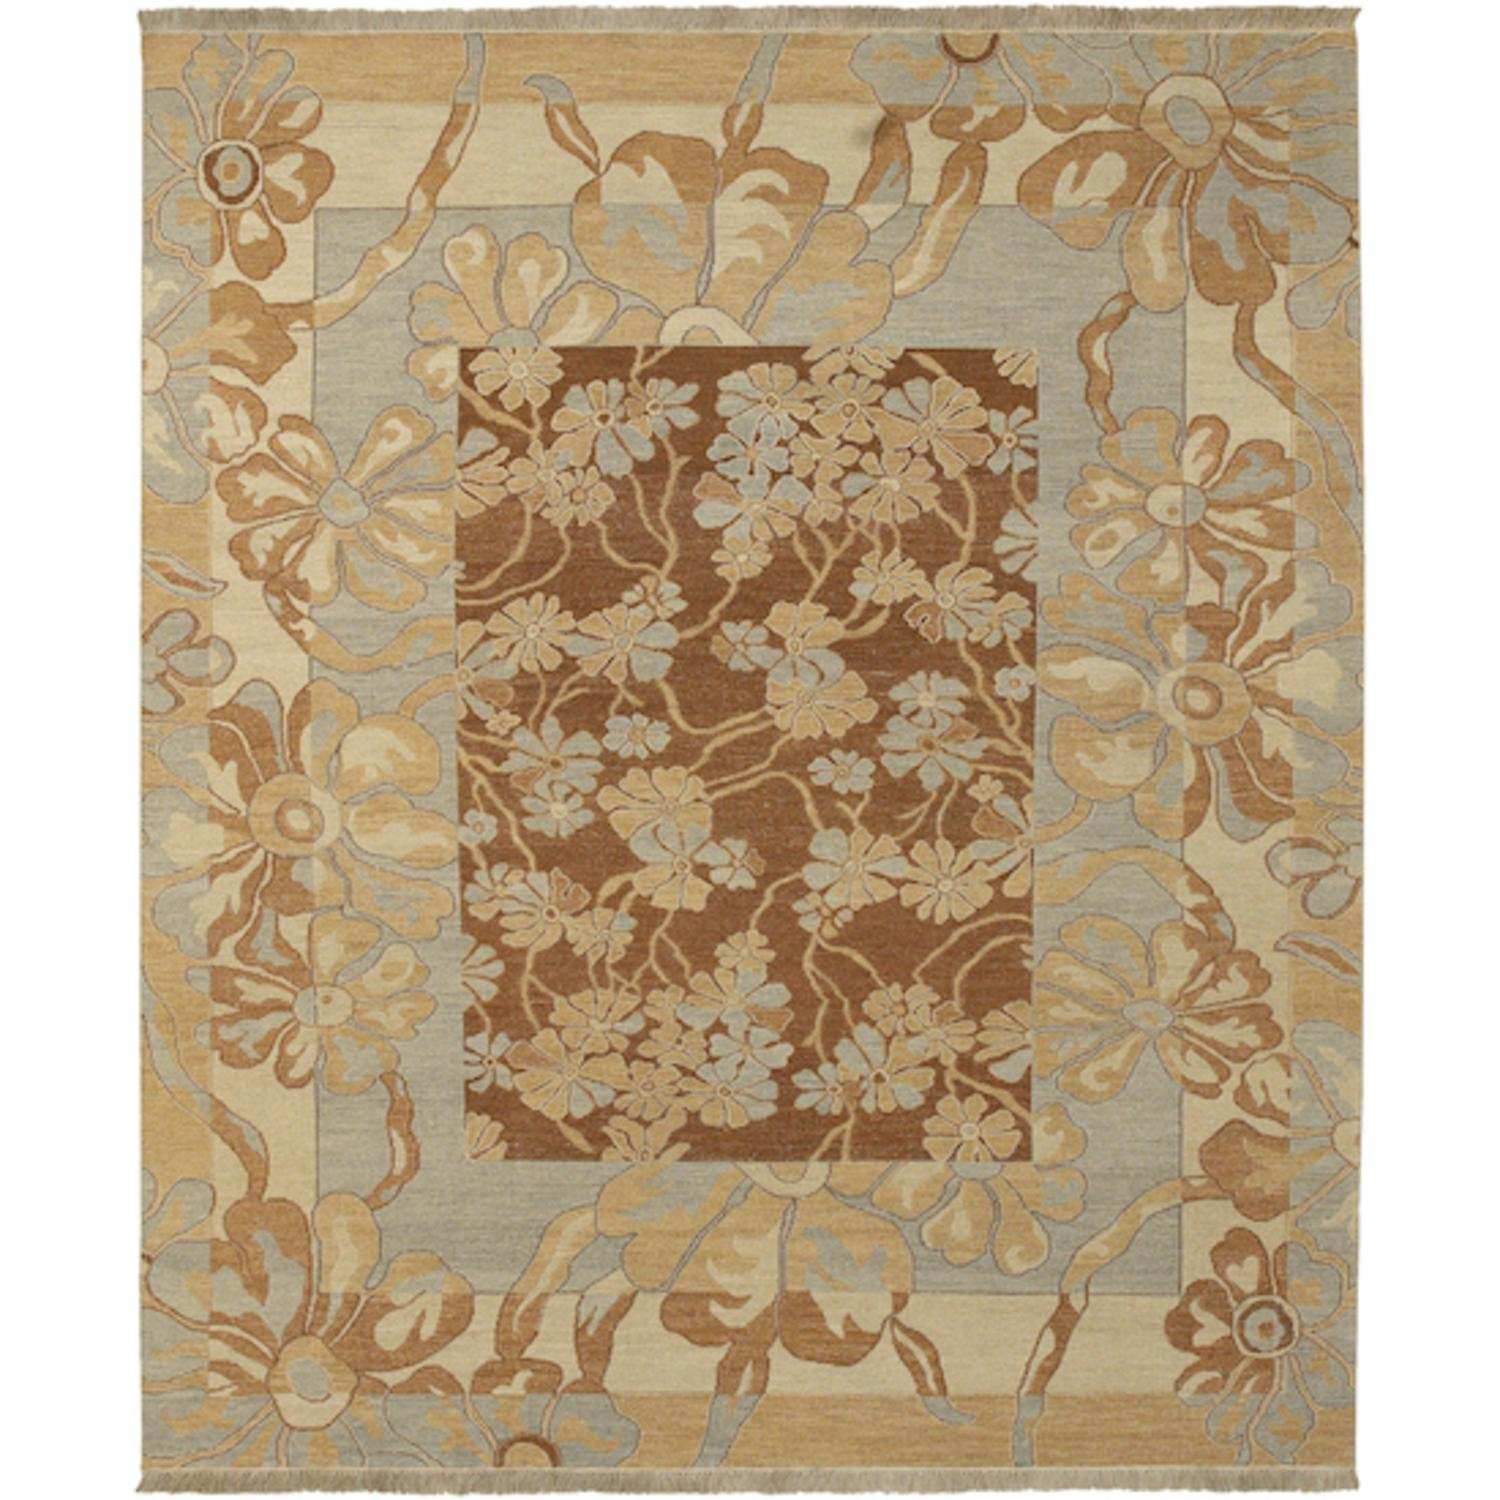 10' x 14' Floral Melody Cognac and Gold Fringed Wool Area Throw Rug